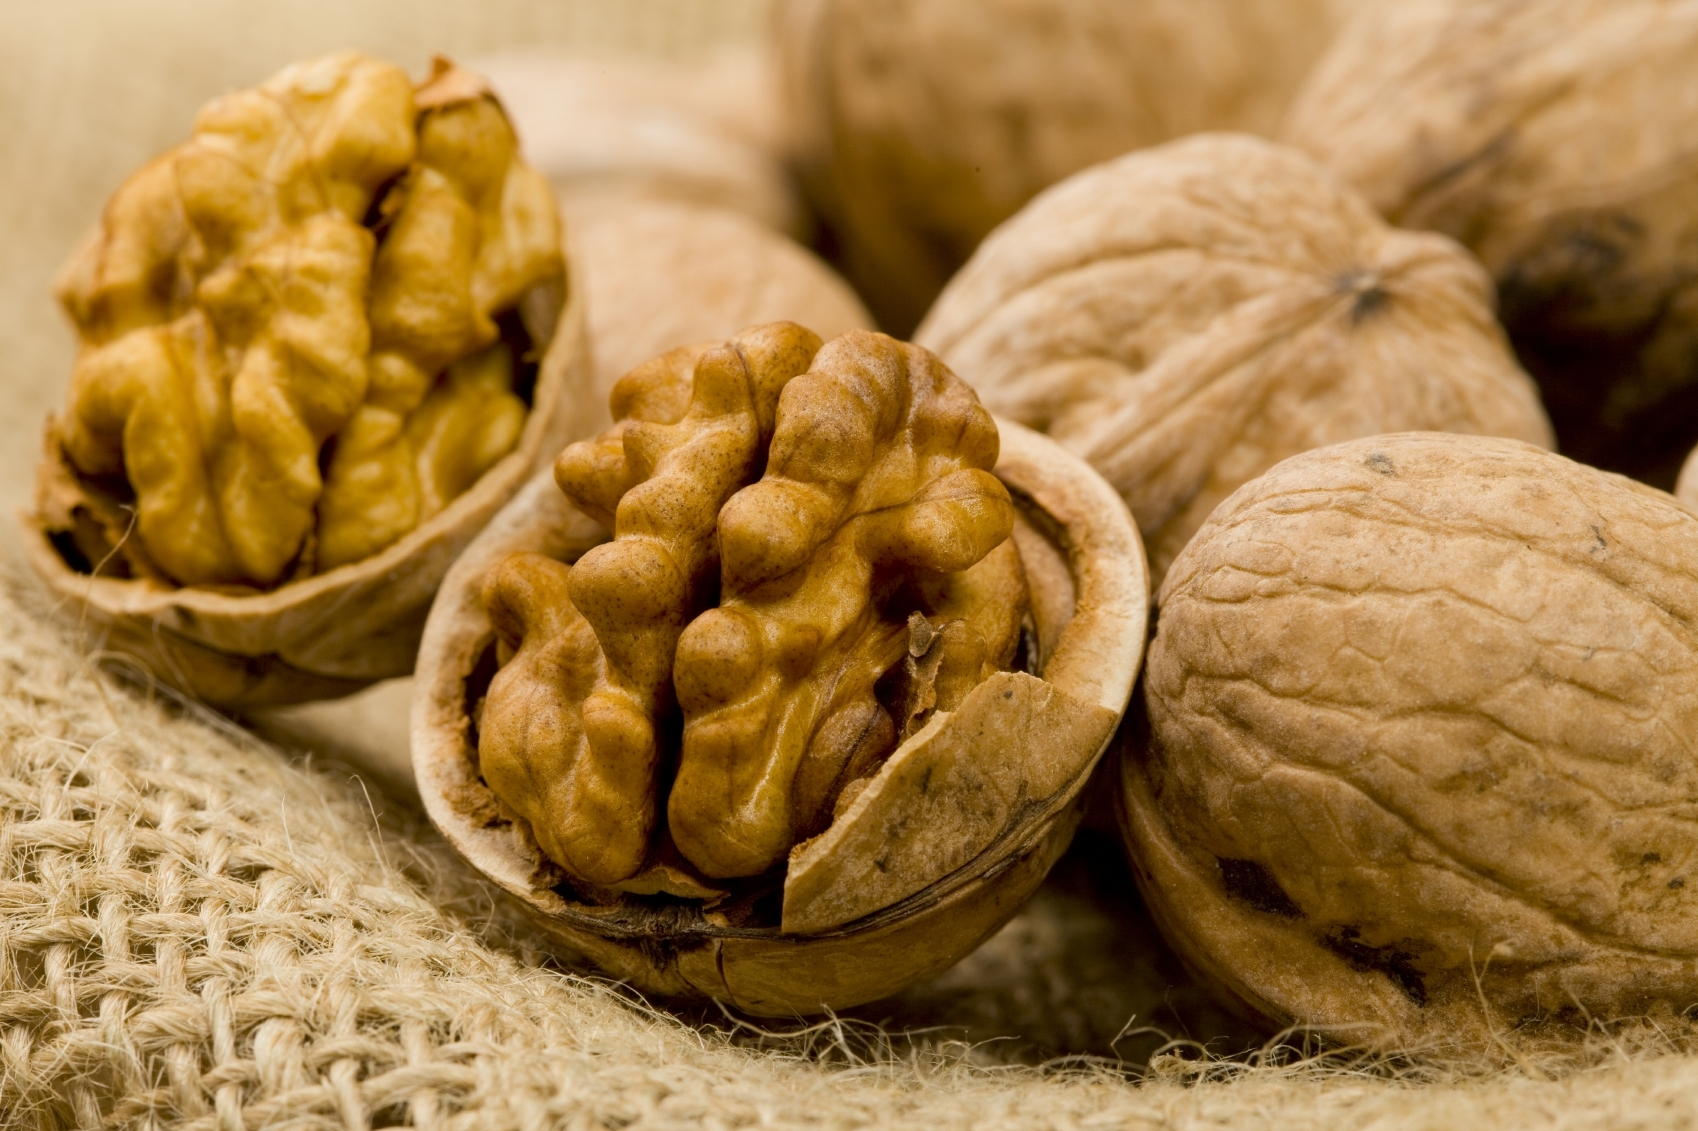 Real World Health Nuts First Evidence That Walnuts May